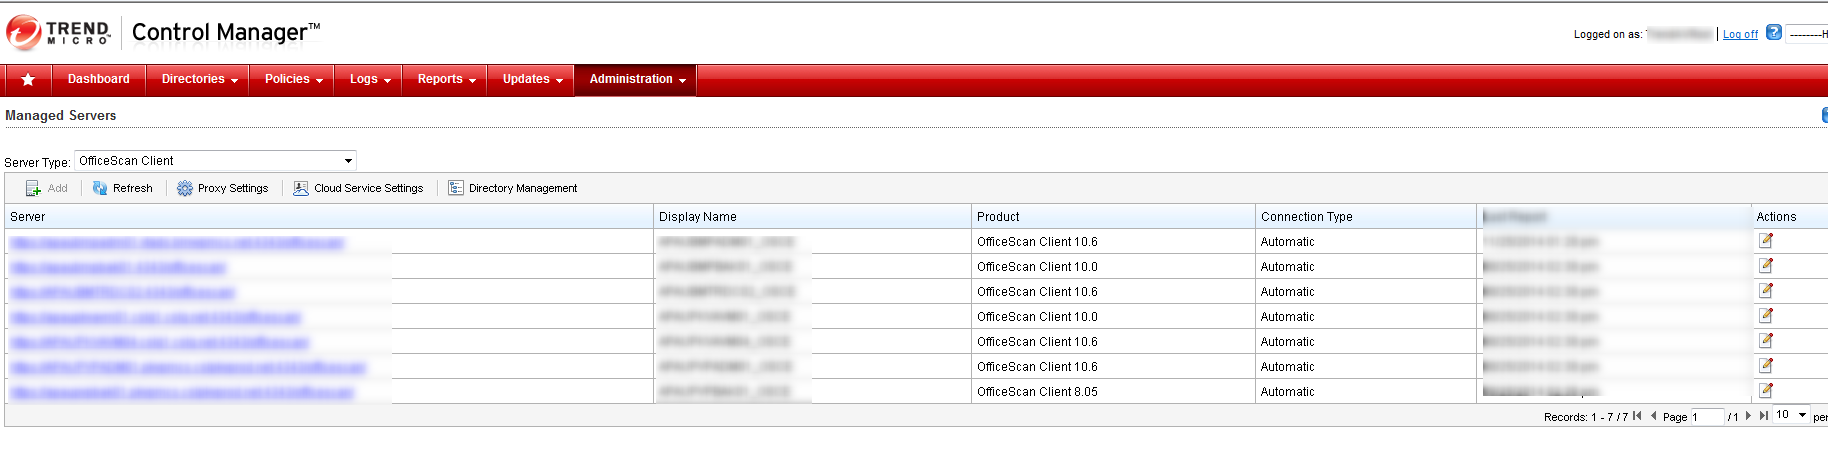 Trend OfficeScan Control Manager